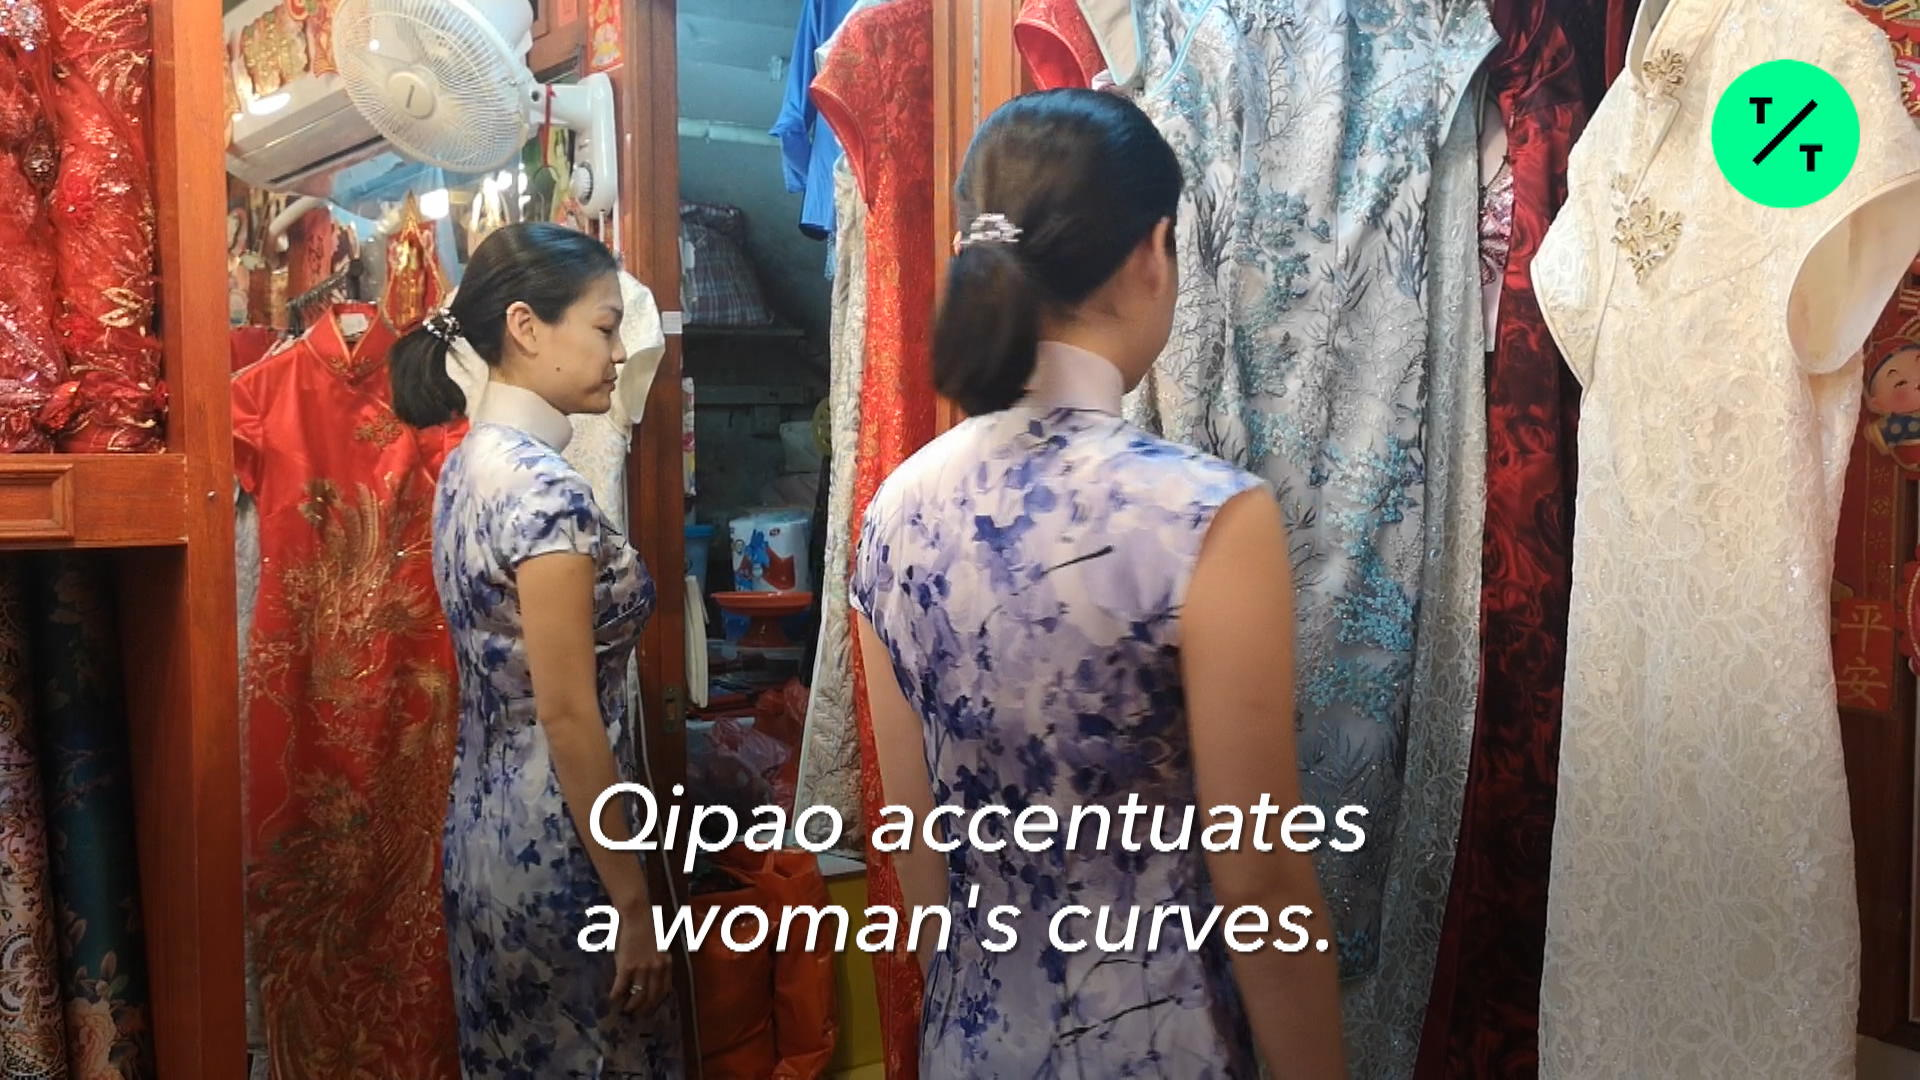 c3e5c7e5e7a2 Revival of the Qipao – Bloomberg